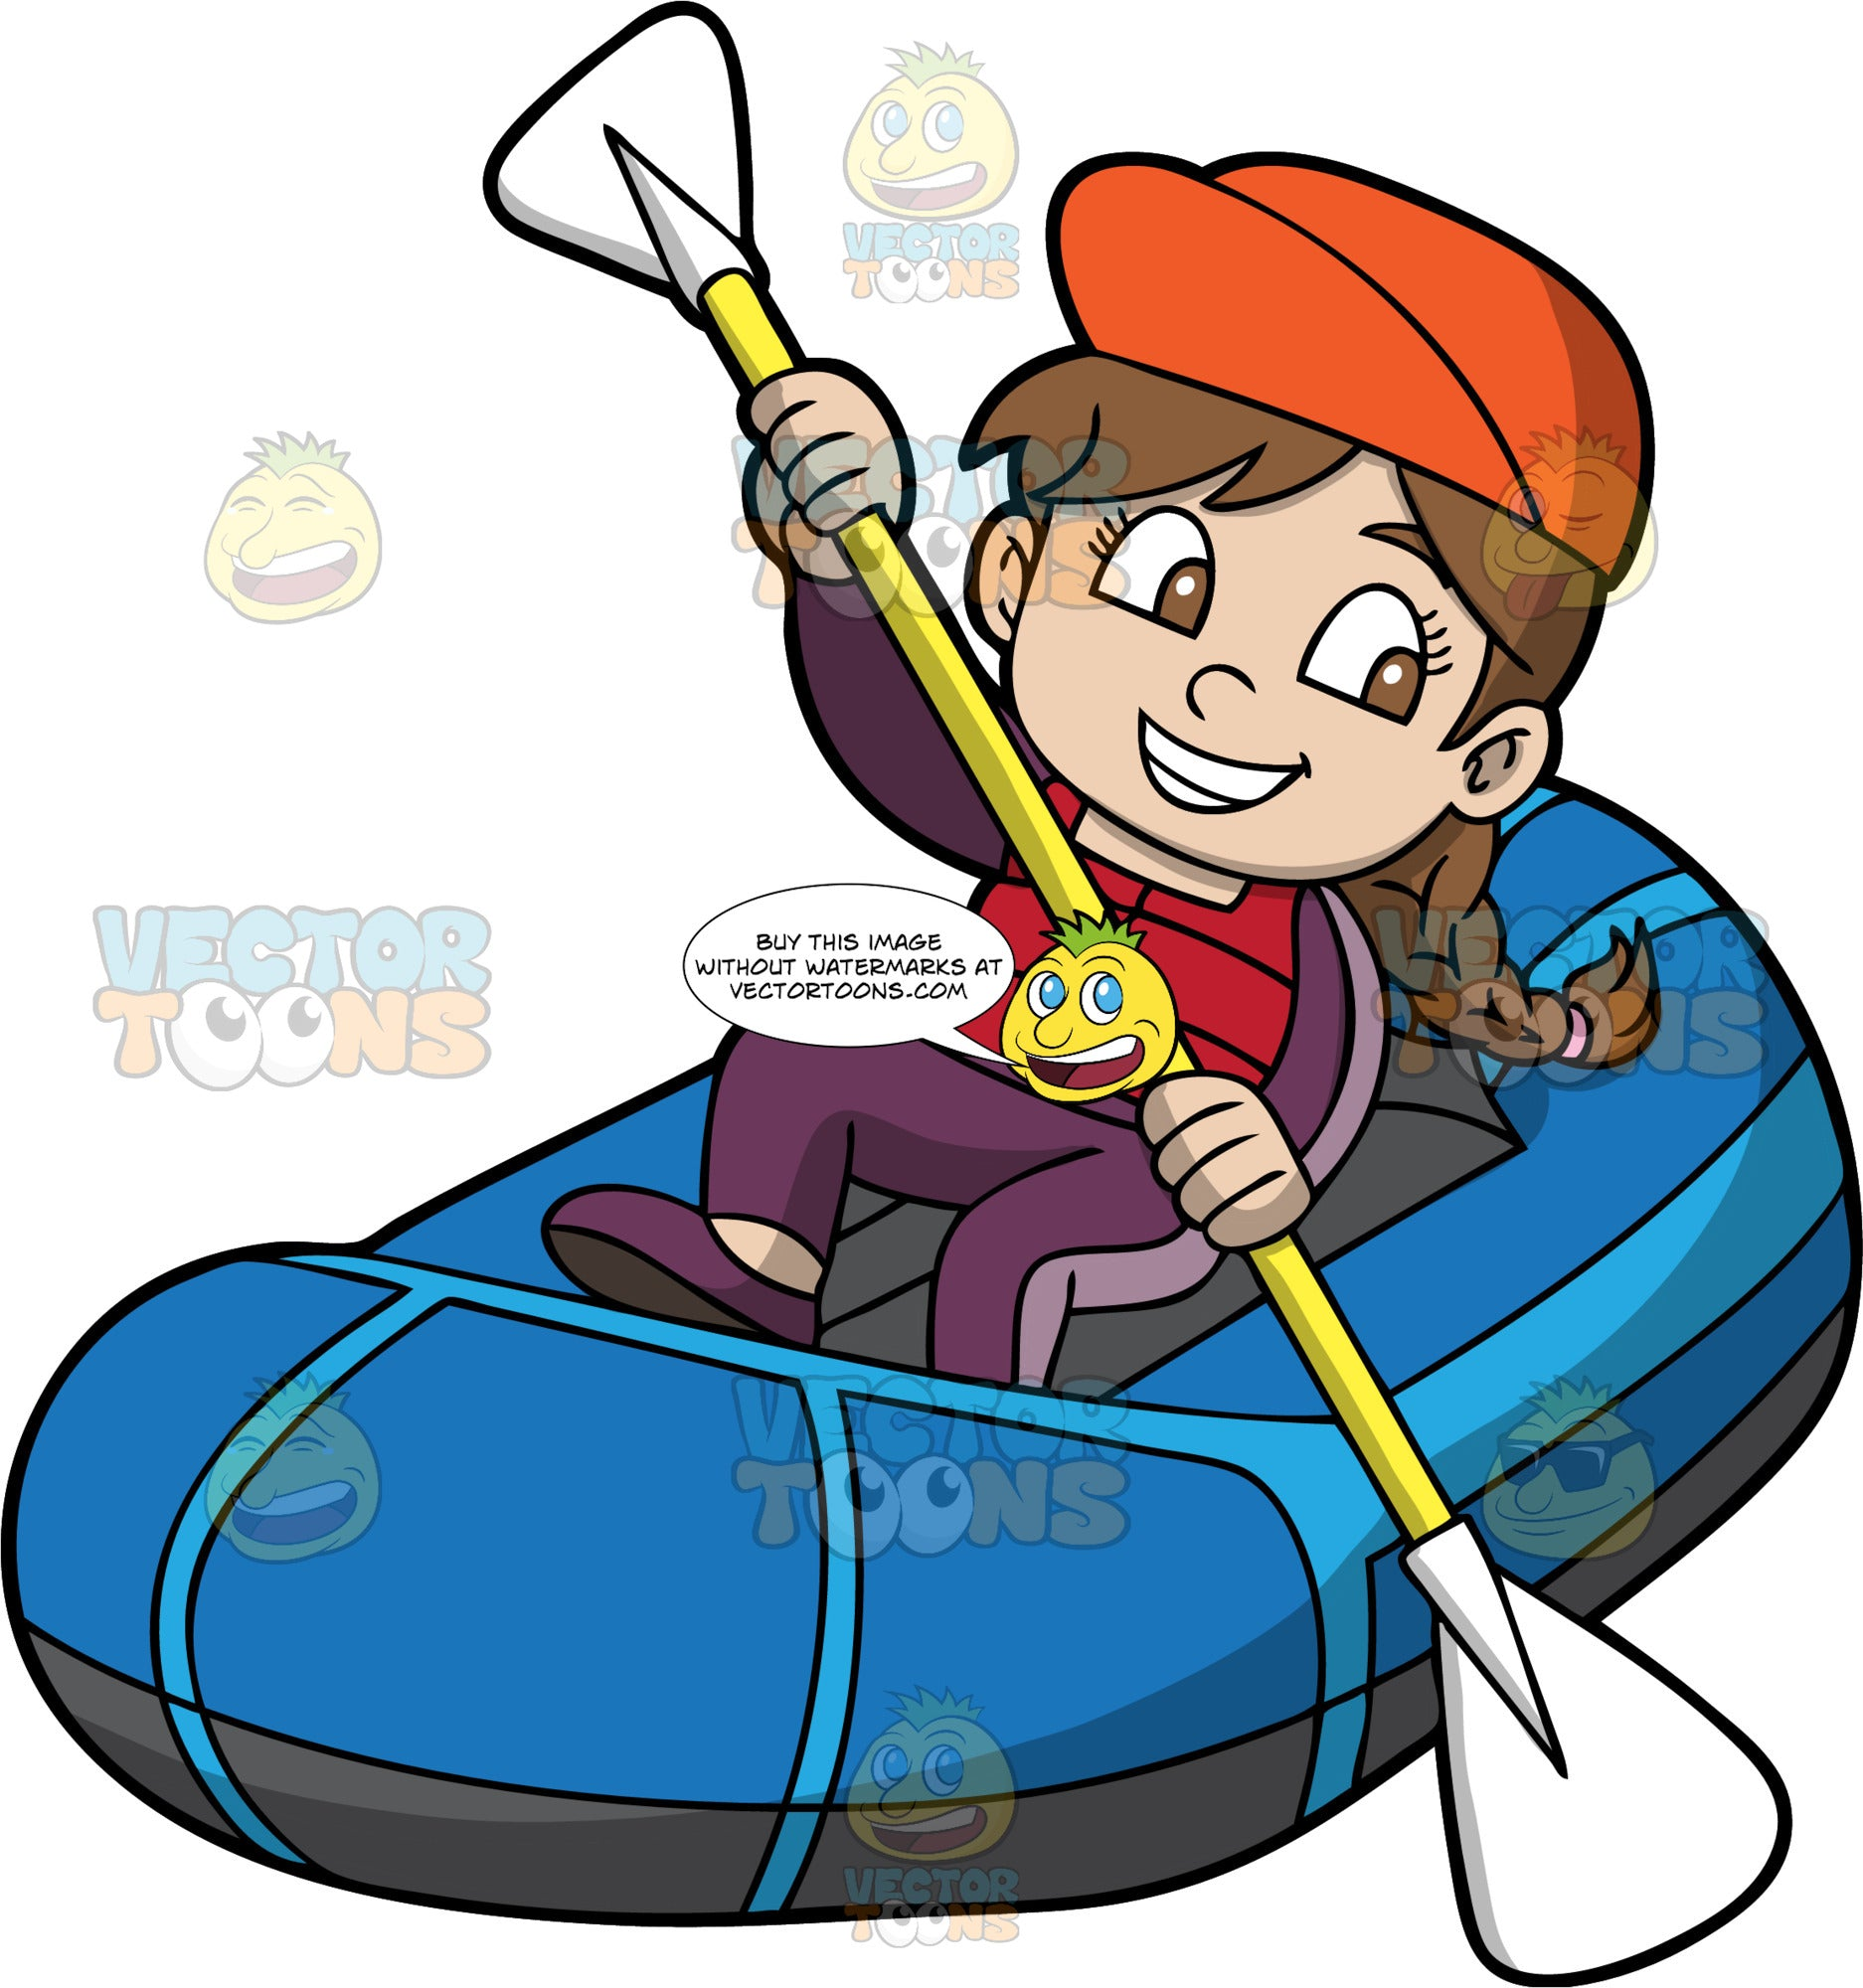 A Young Girl Skillfully Navigates Her Raft Through The Water. A girl with brown hair in braids, wearing a purple wet suit, red life jacket, and orange hat, holds a double bladed paddle in both hands and uses it to steer her blue raft